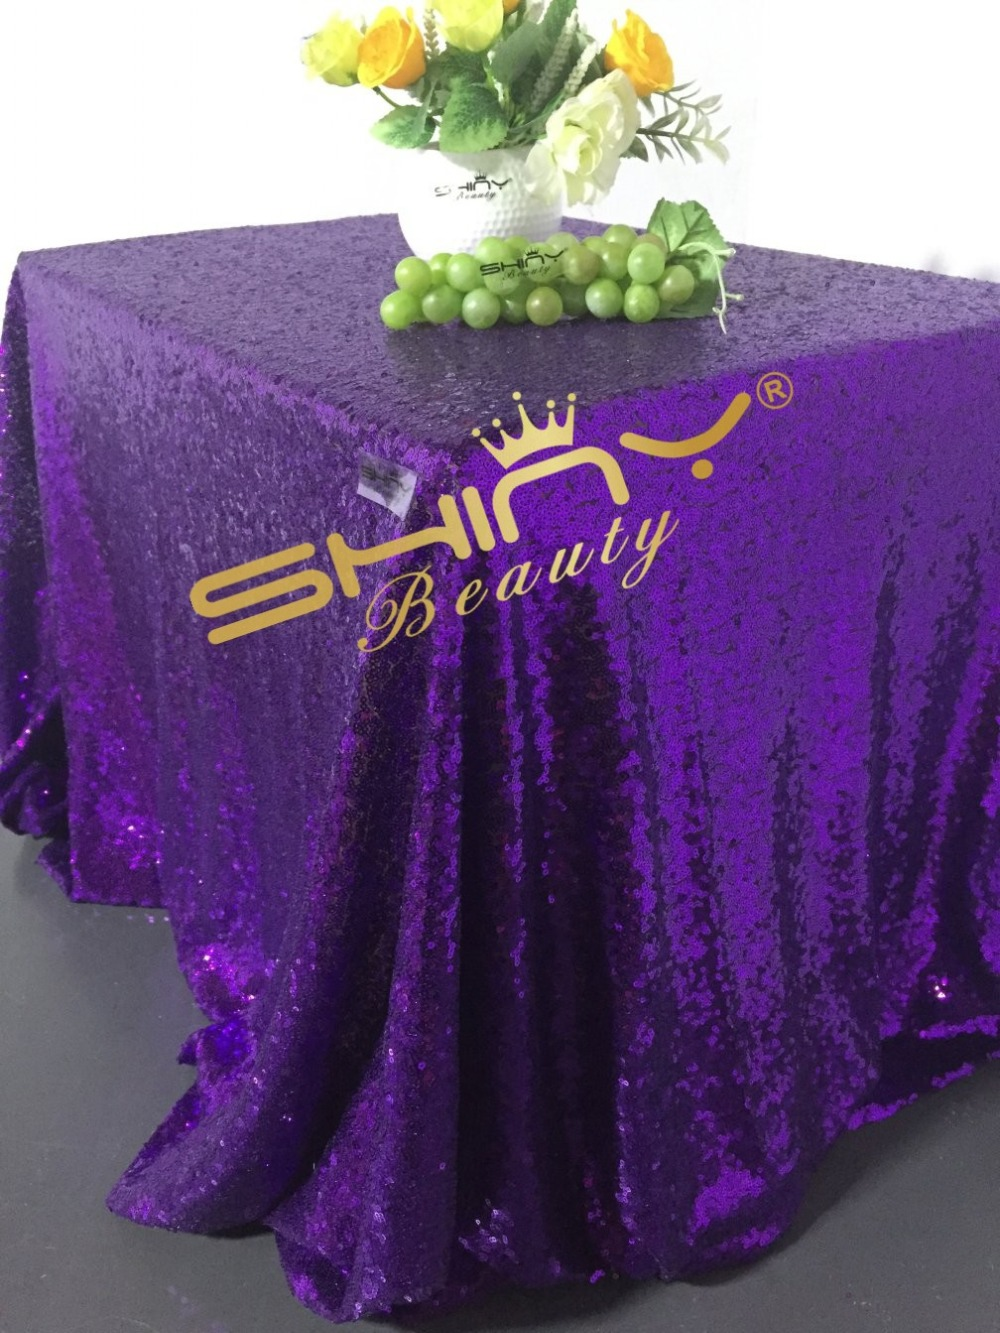 Free Shipping Shiny 96inchx96inch Square Purple Sequin Tablecloth Best  Wedding Decoration China  Mainland Compare Prices on Square Purple Tablecloth  Online Shopping Buy  . Purple Tablecloths For Wedding. Home Design Ideas